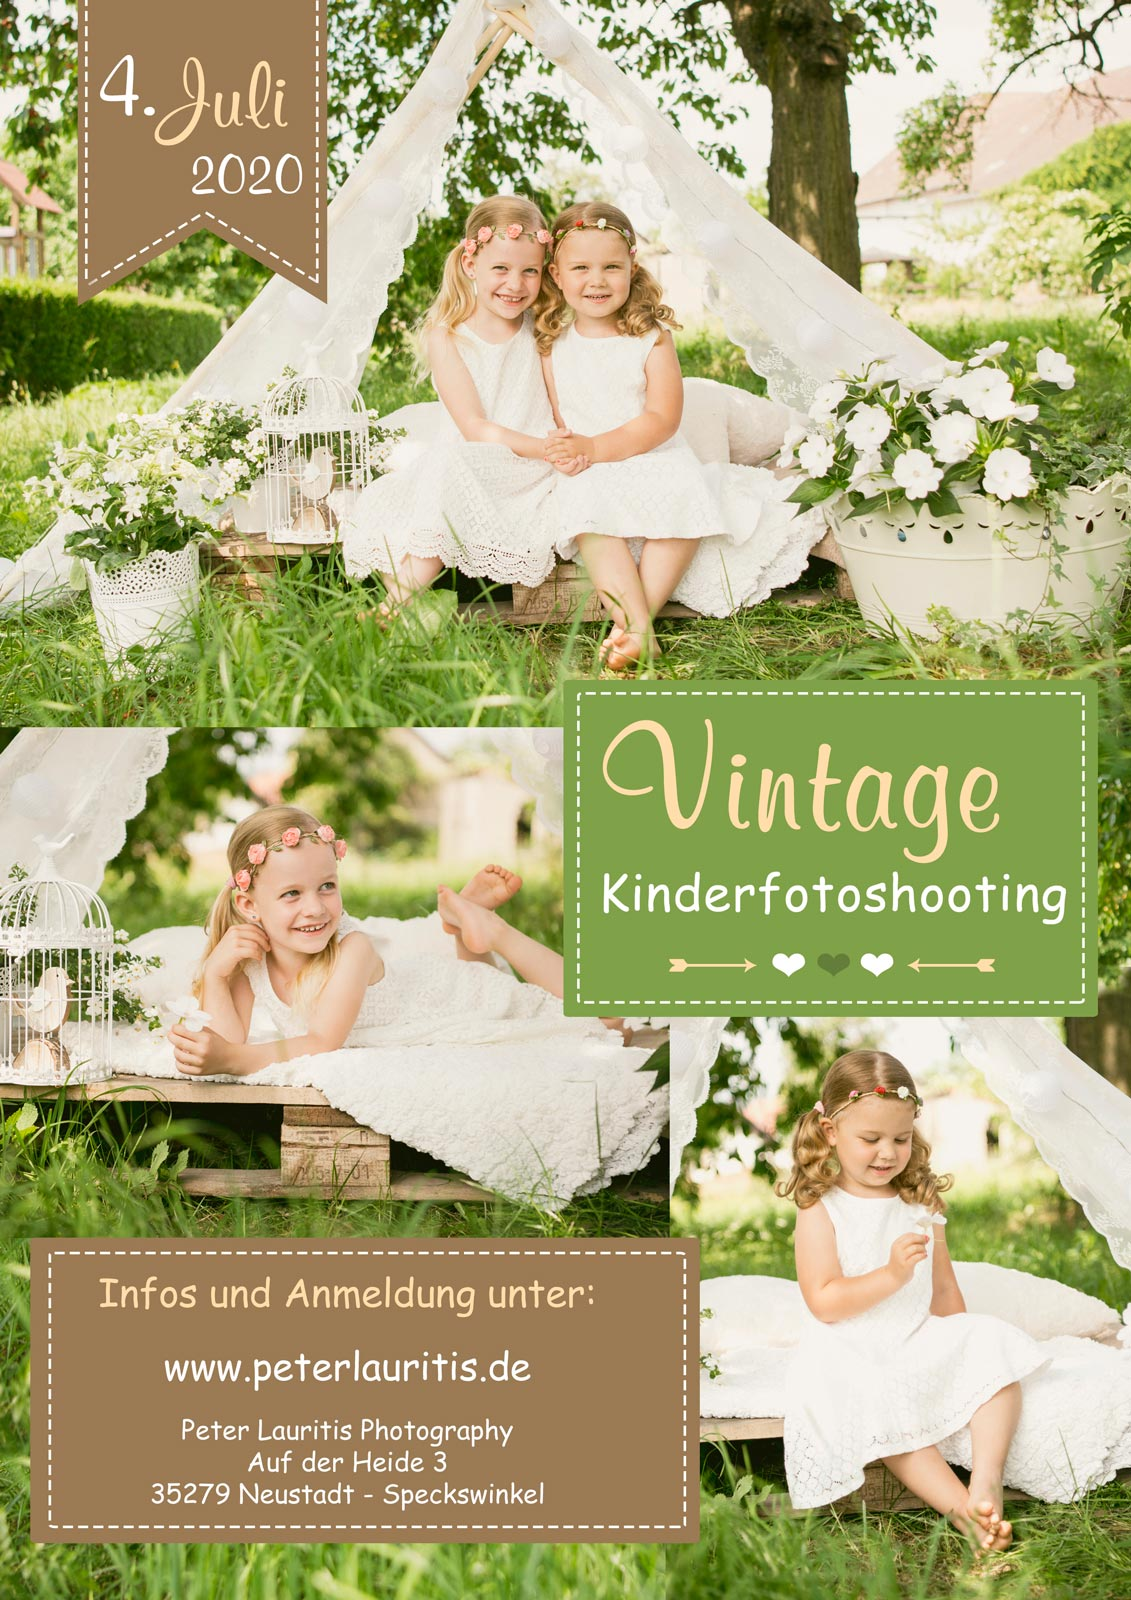 fotoaktion vintage kinder fotoshooting